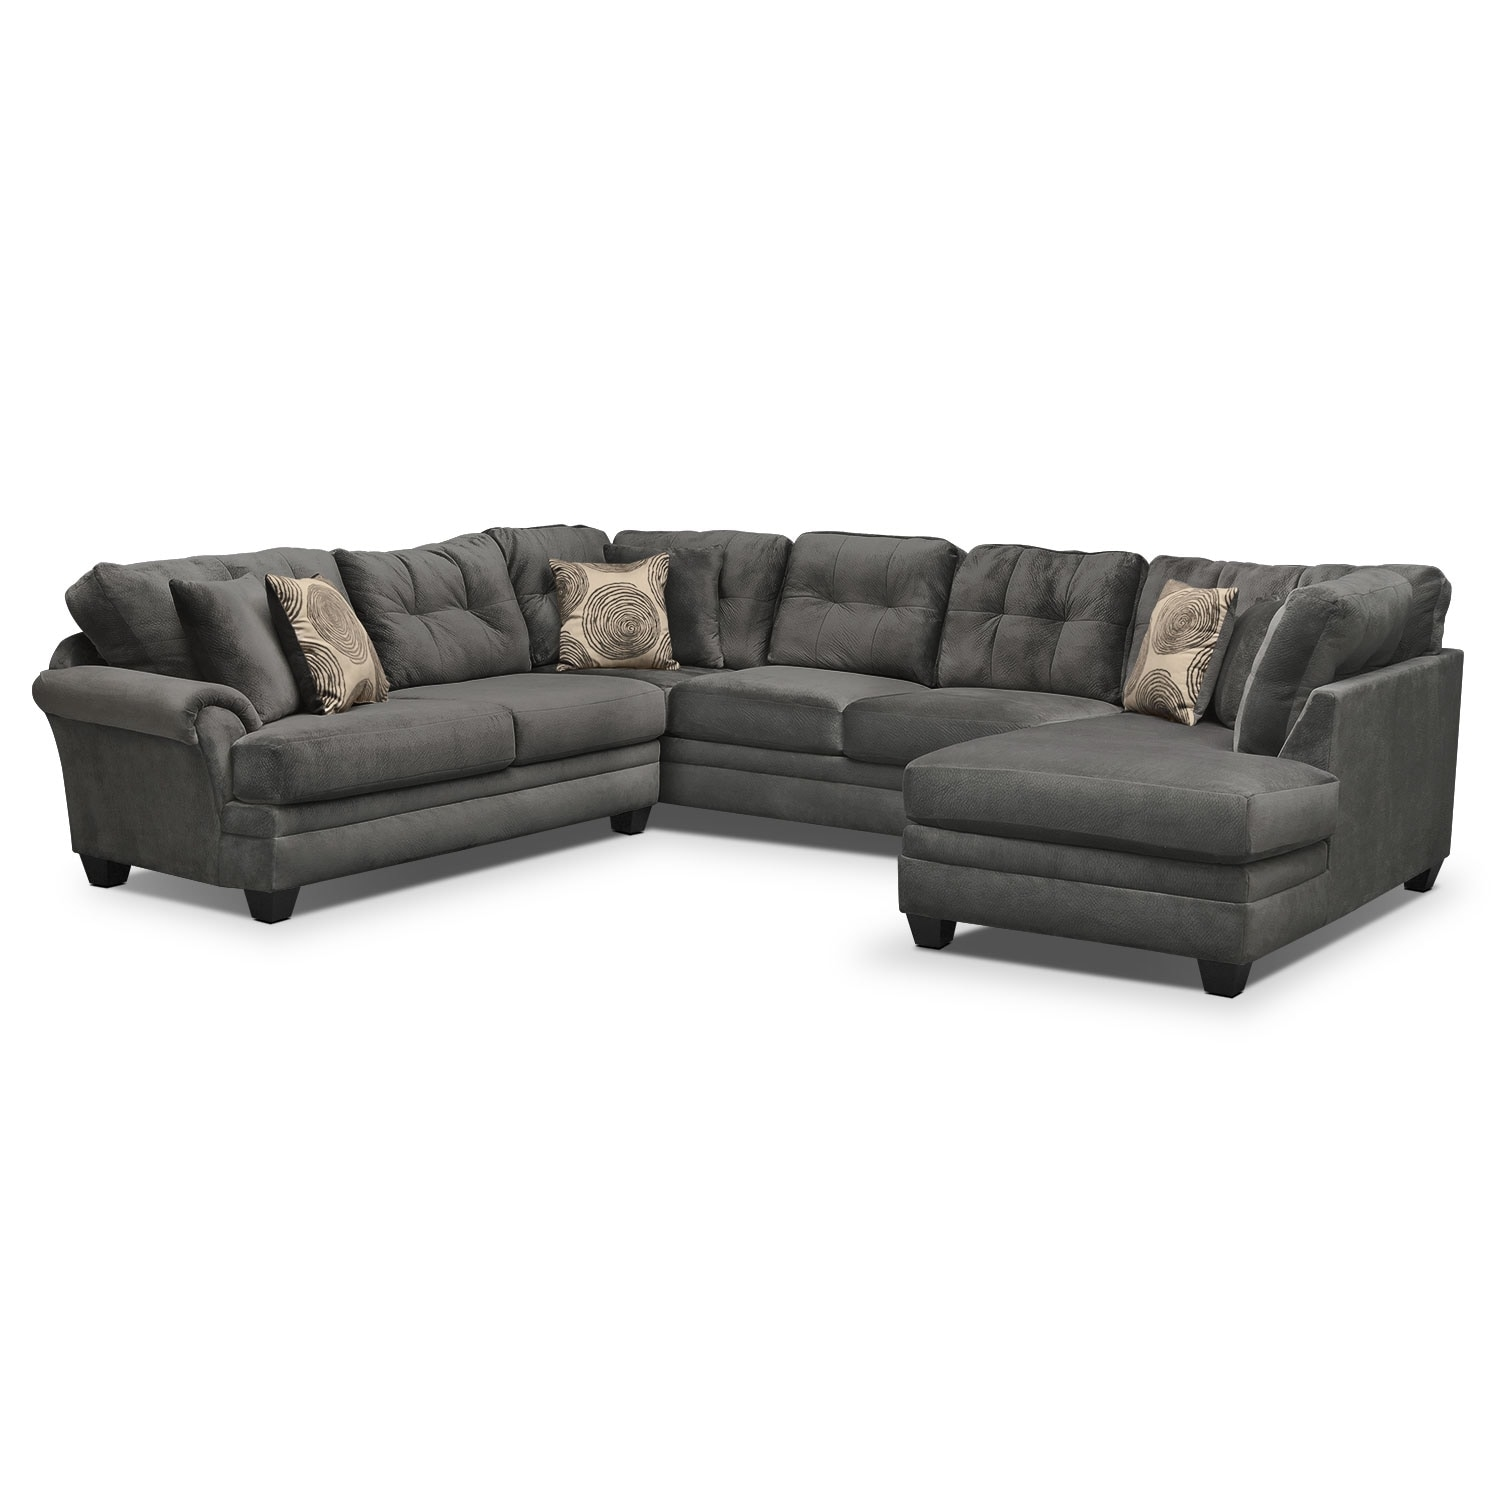 Cordelle 3 Piece Sectional Gray